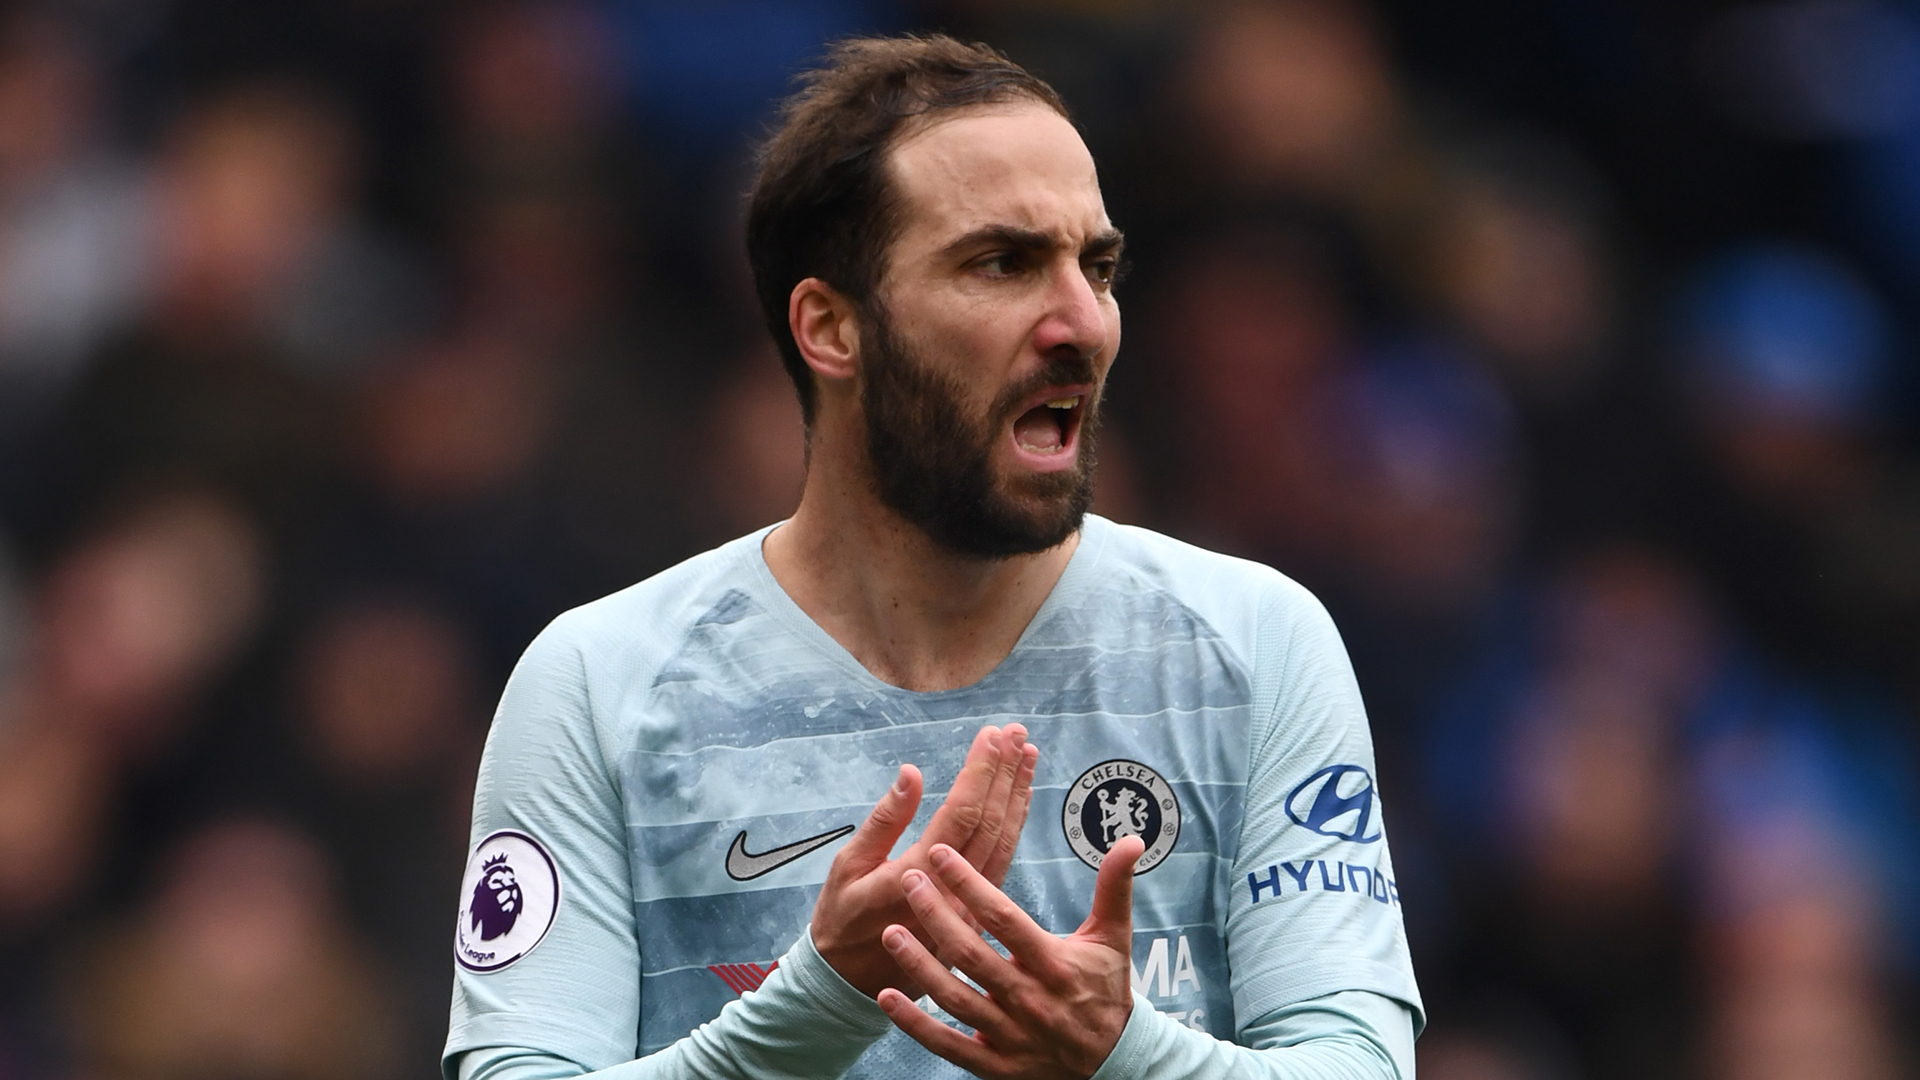 Chelsea need a new No.9 to replace Higuain, says Hasselbaink